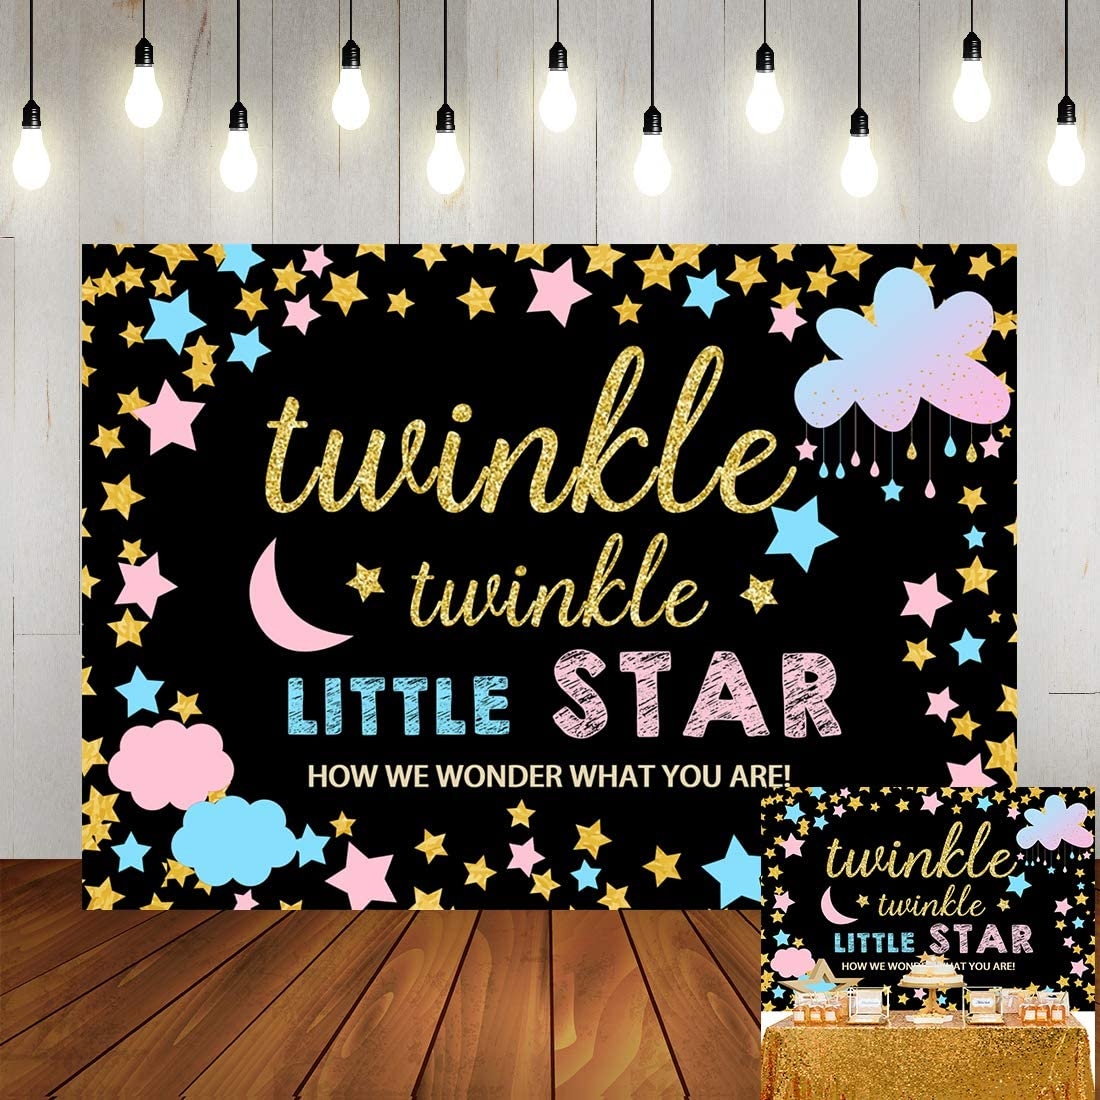 Twinkle Twinkle Little Star Backdrop Gender Reveal Party Banner 7x5ft Vinyl Pink and Blue Cloud Background for Photography Baby Shower Decorations